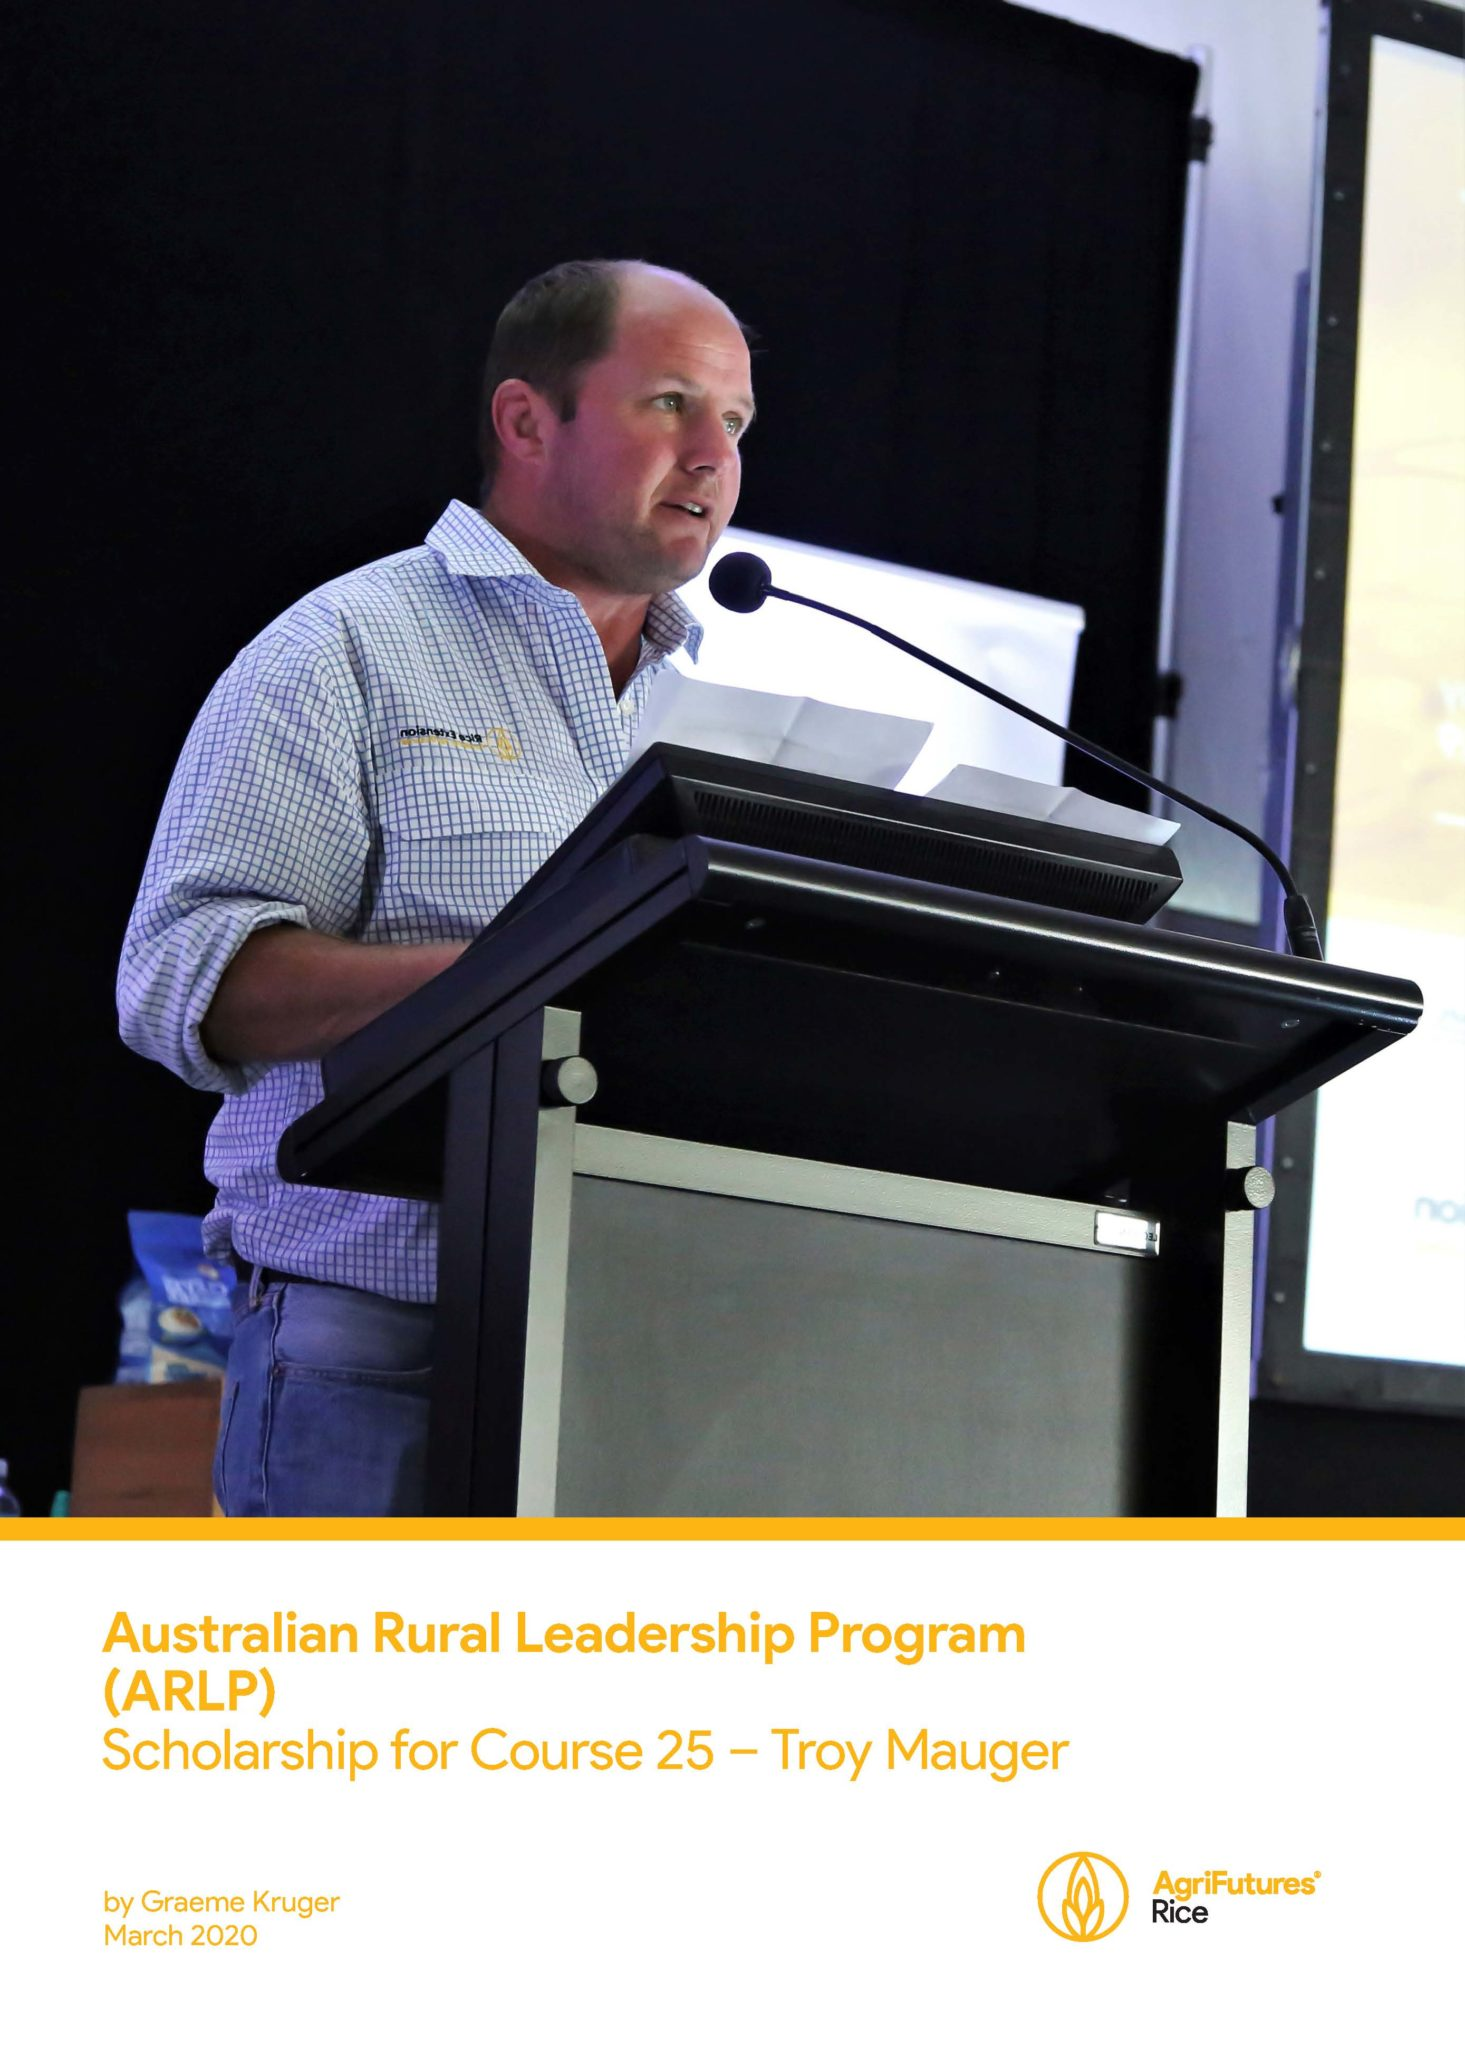 Australian Rural Leadership Program (ARLP) Scholarship for Course 25 – Troy Mauger - image